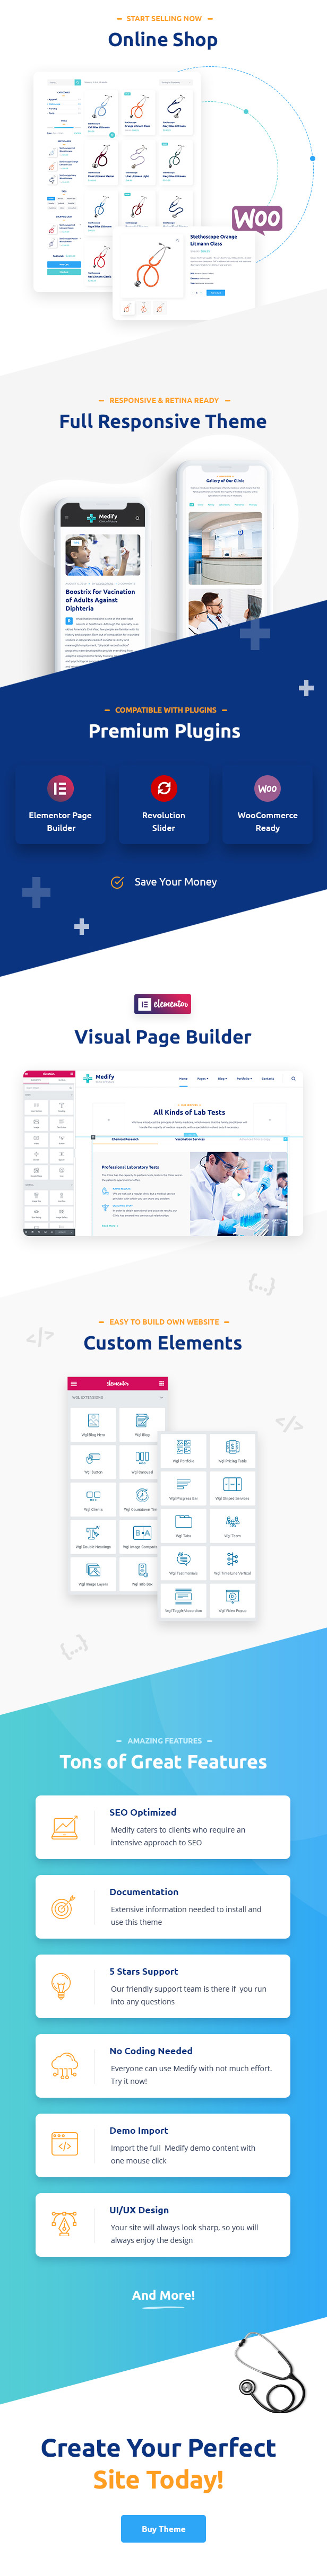 Medify - Health & Clinic WordPress Theme - 2